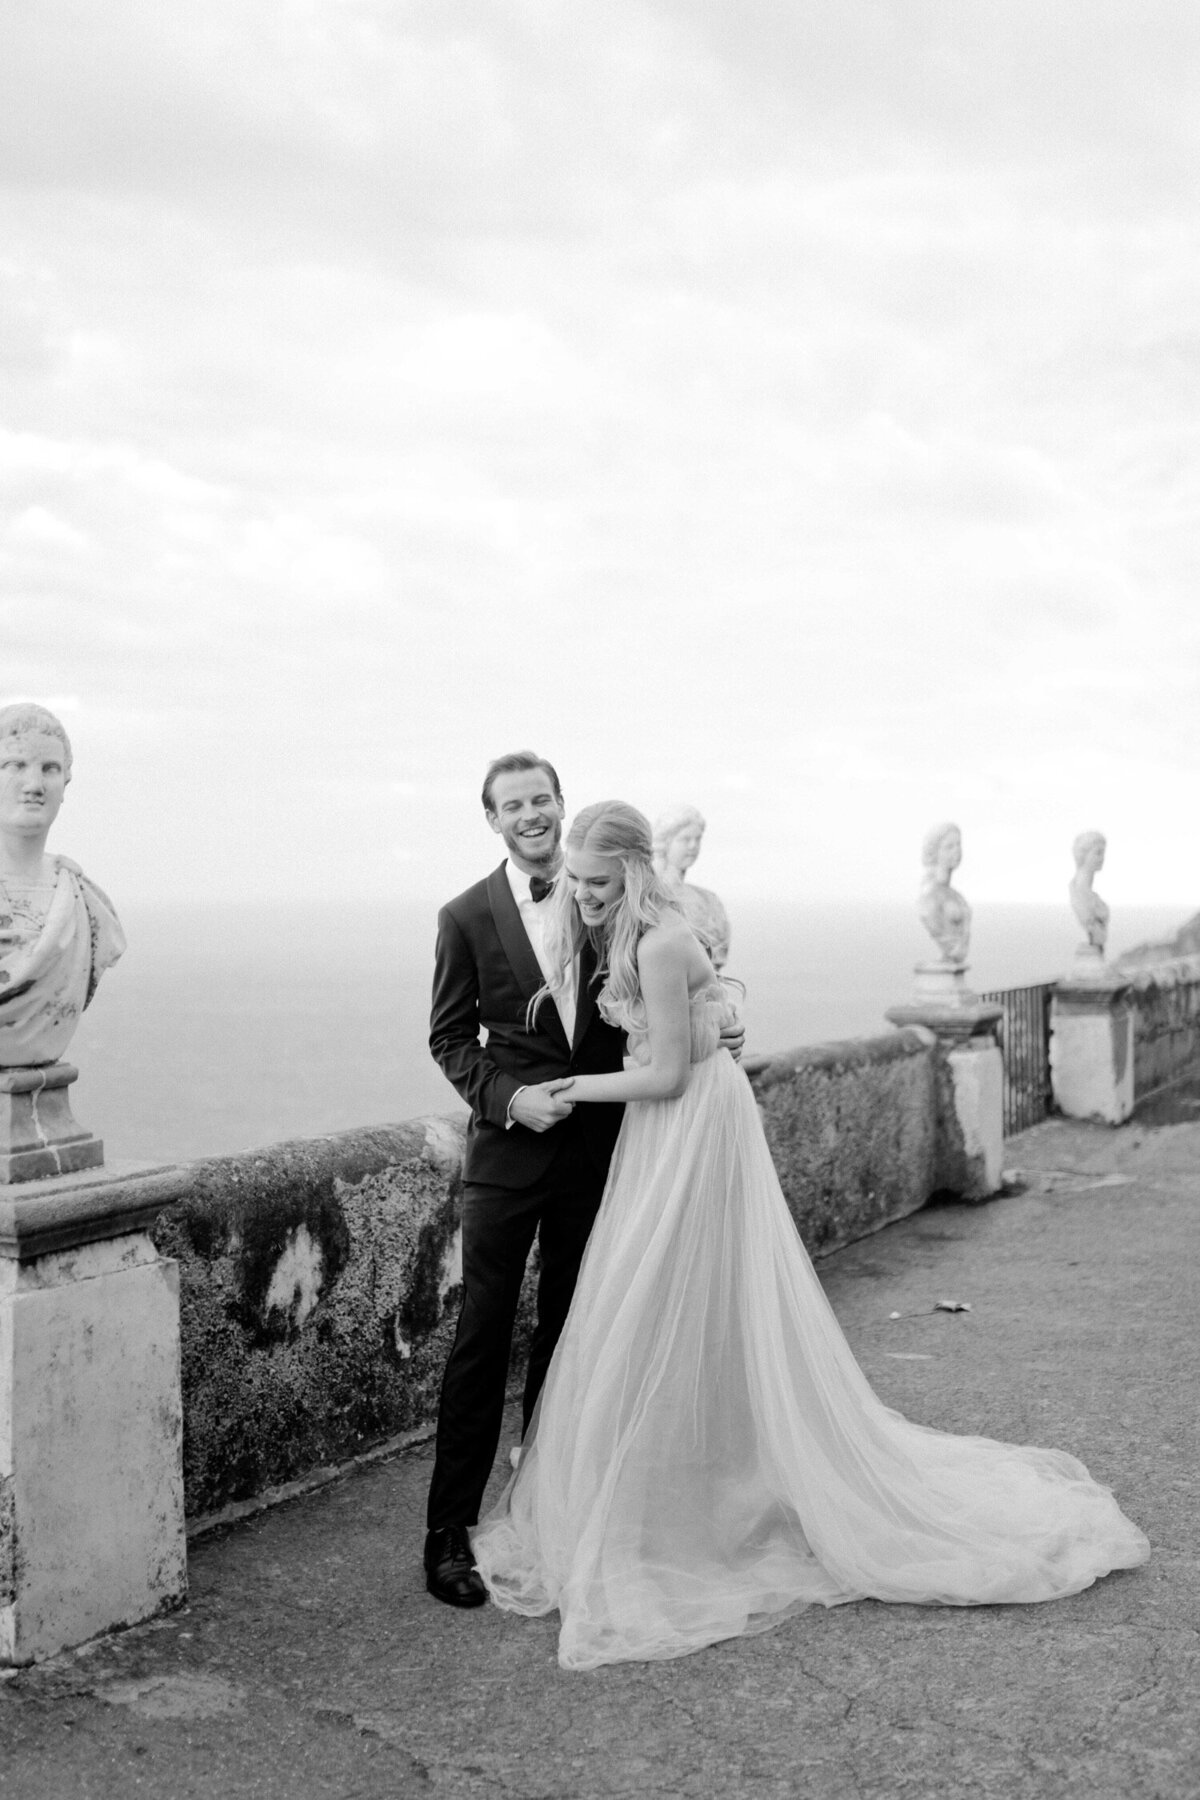 071_Villa_Cimbrone_Amalfi_Coast_Luxury_Wedding_Photographer (71 von 101)_Flora and Grace is a luxury wedding photographer at the Amalfi Coast. Discover their elegant and stylish photography work at the Villa Cimbrone.